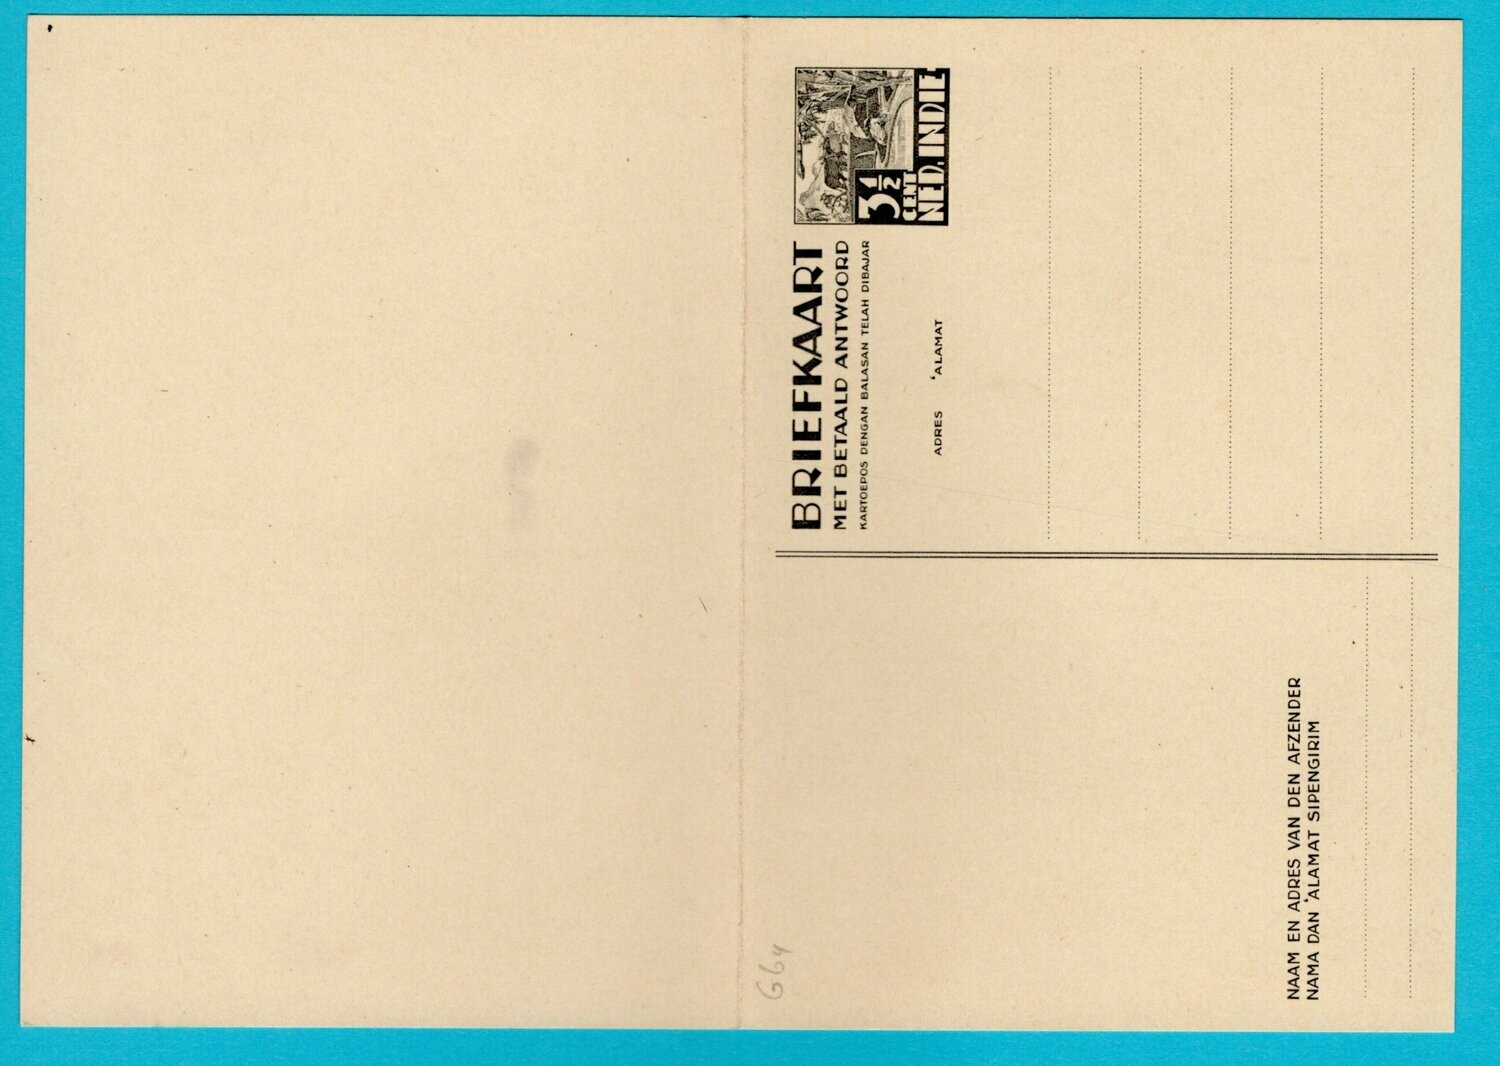 NETHERLANDS EAST INDIES postal card 3,5ct with paid reply *